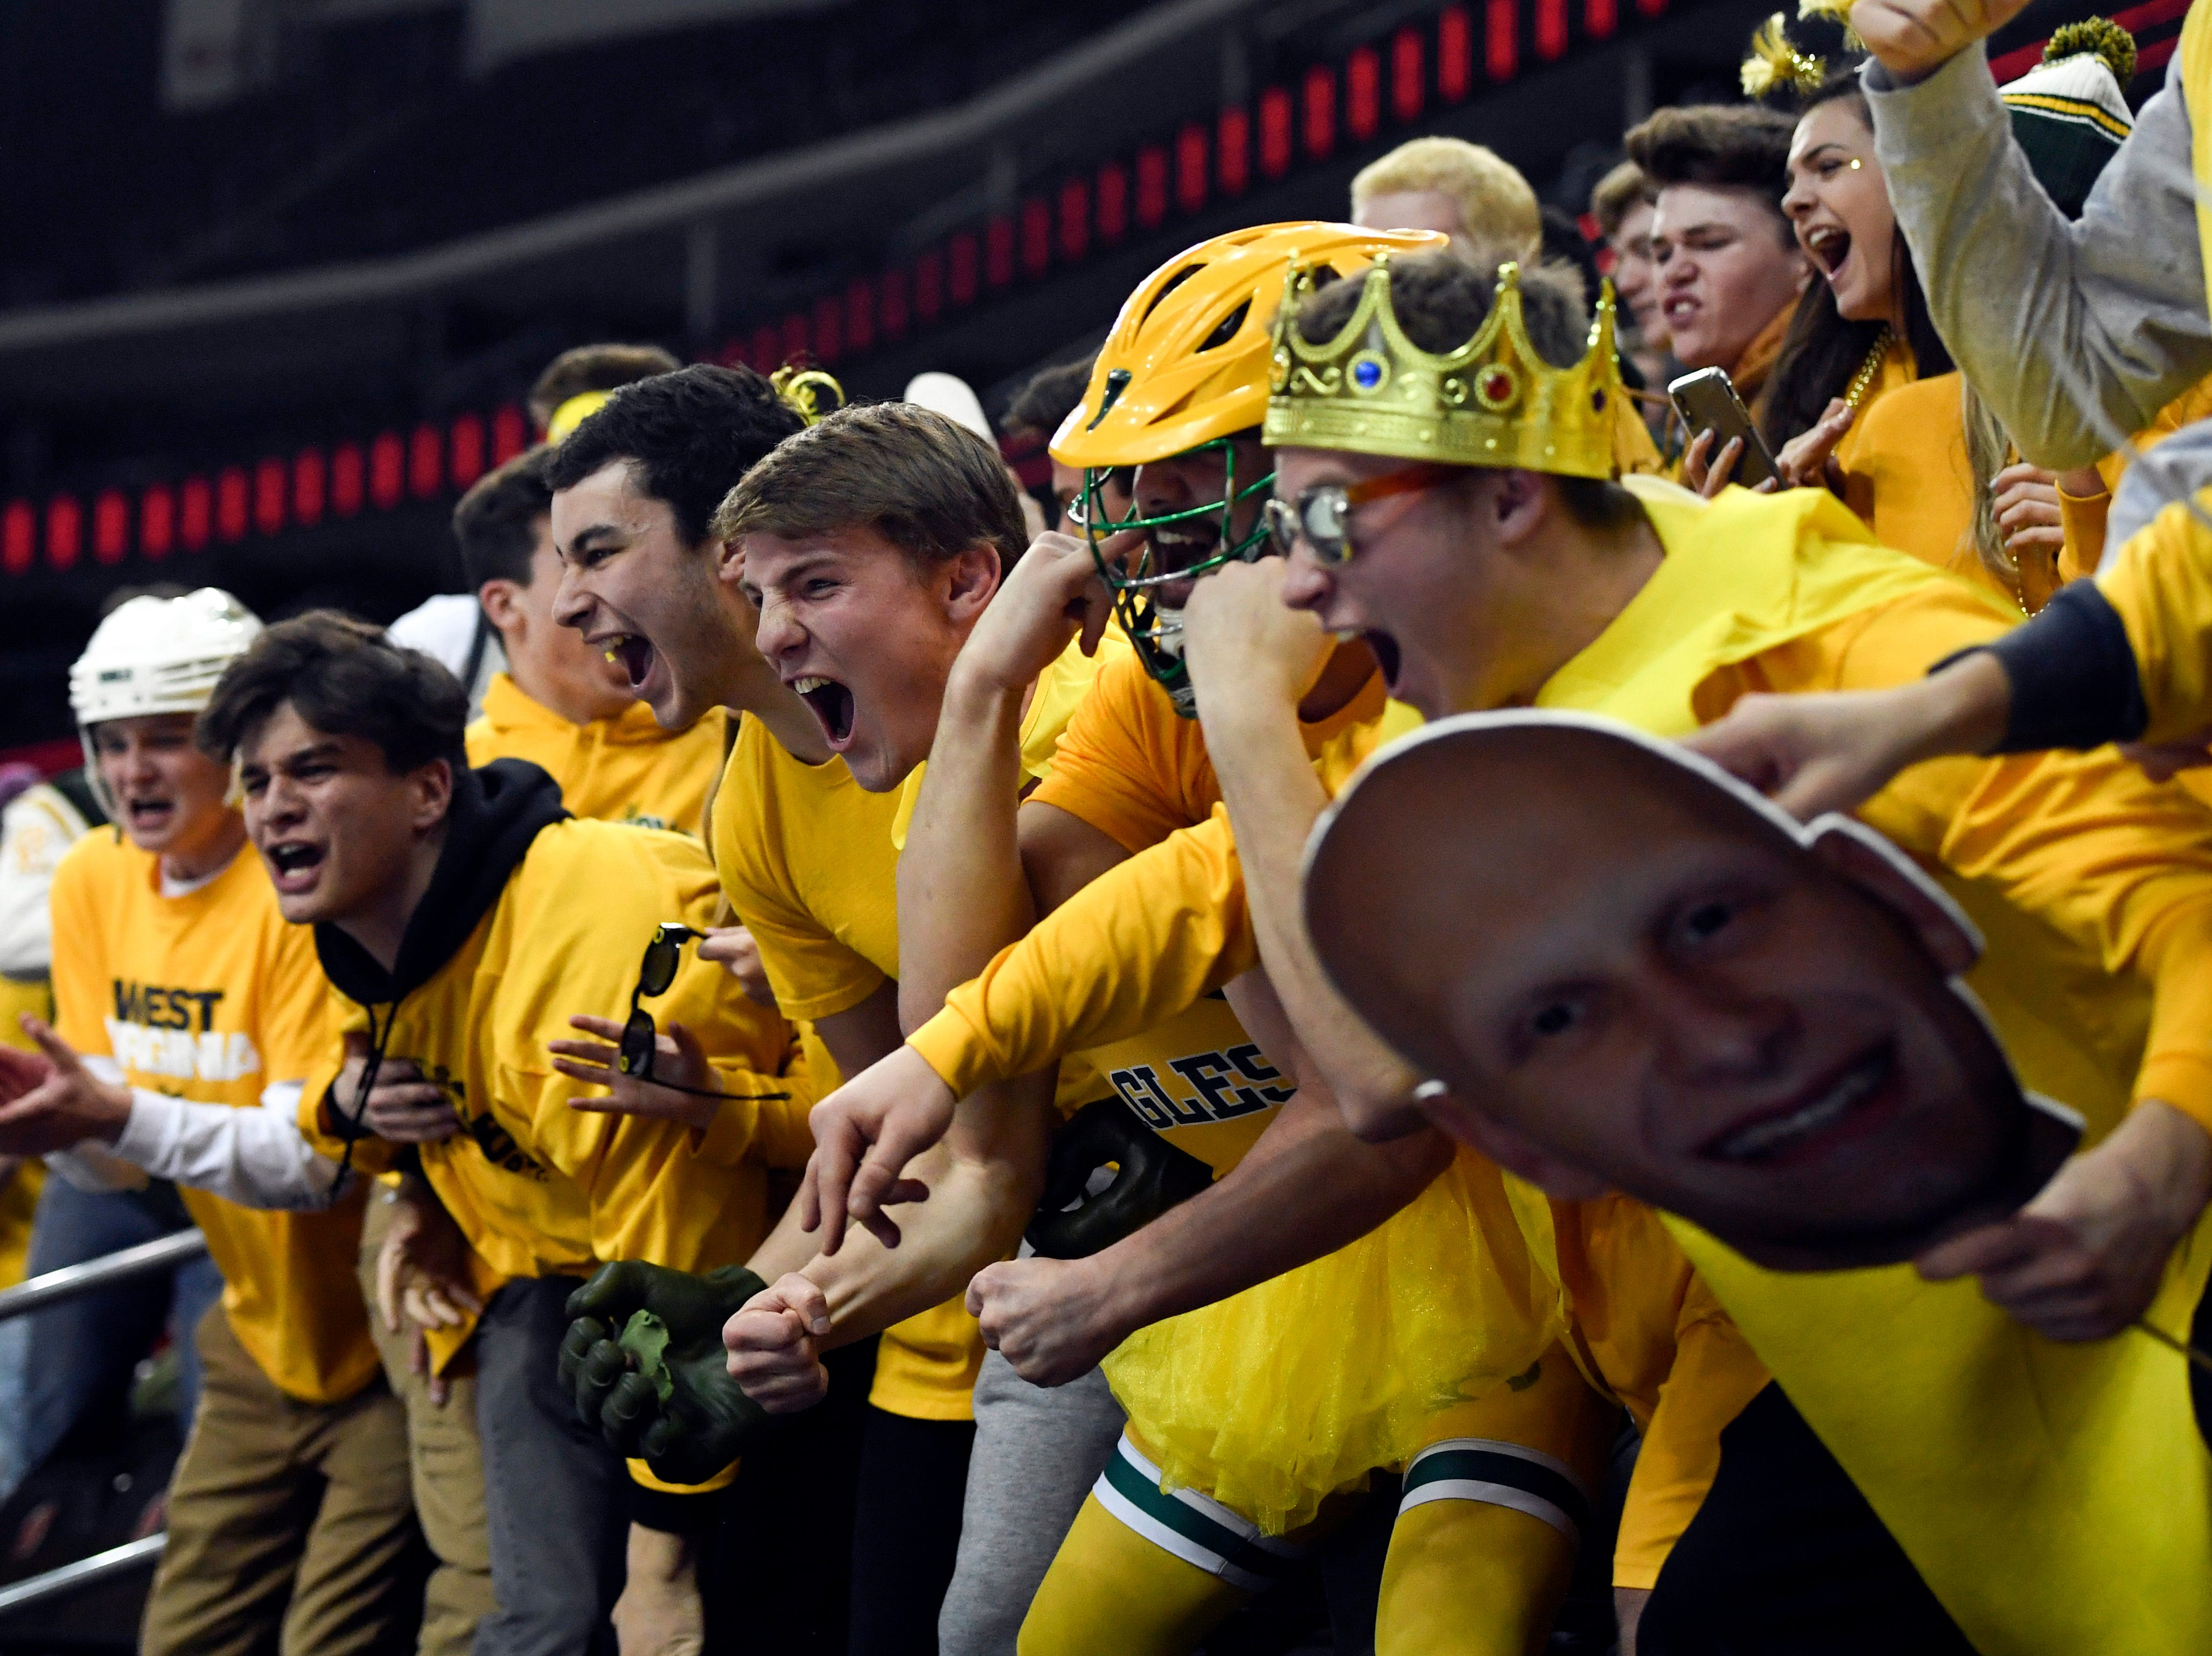 Morris Knolls/Hills student section celebrates their first goal of the game against Hillsborough in the Public A ice hockey final at the Prudential Center on Monday, March 4, 2019, in Newark.